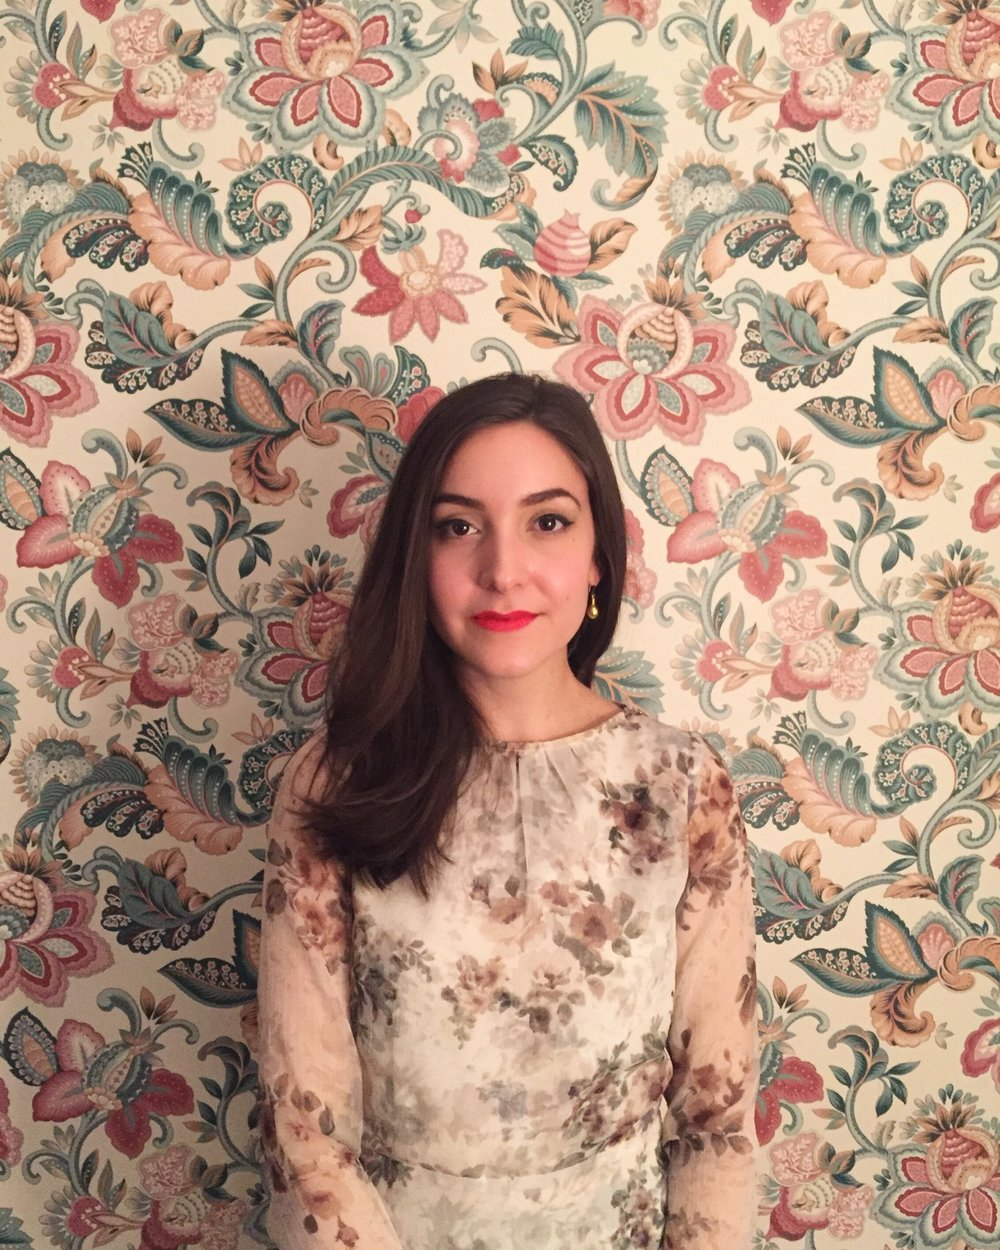 Emily Freidenrich  Instagram: @emfrei  Emily Freidenrich is a book editor and image researcher for Girl Friday Productions. She is the author of  The Art of Beatrix Potter  for Chronicle Books (as Emily Zach), and her second book will release in the fall of 2018. Emily has a background in art history, and has a deep interest in Modern and contemporary art, as well as illustration, design, and pop culture. She lives in Seattle with her husband, Tyler, and corgi, Pancake.